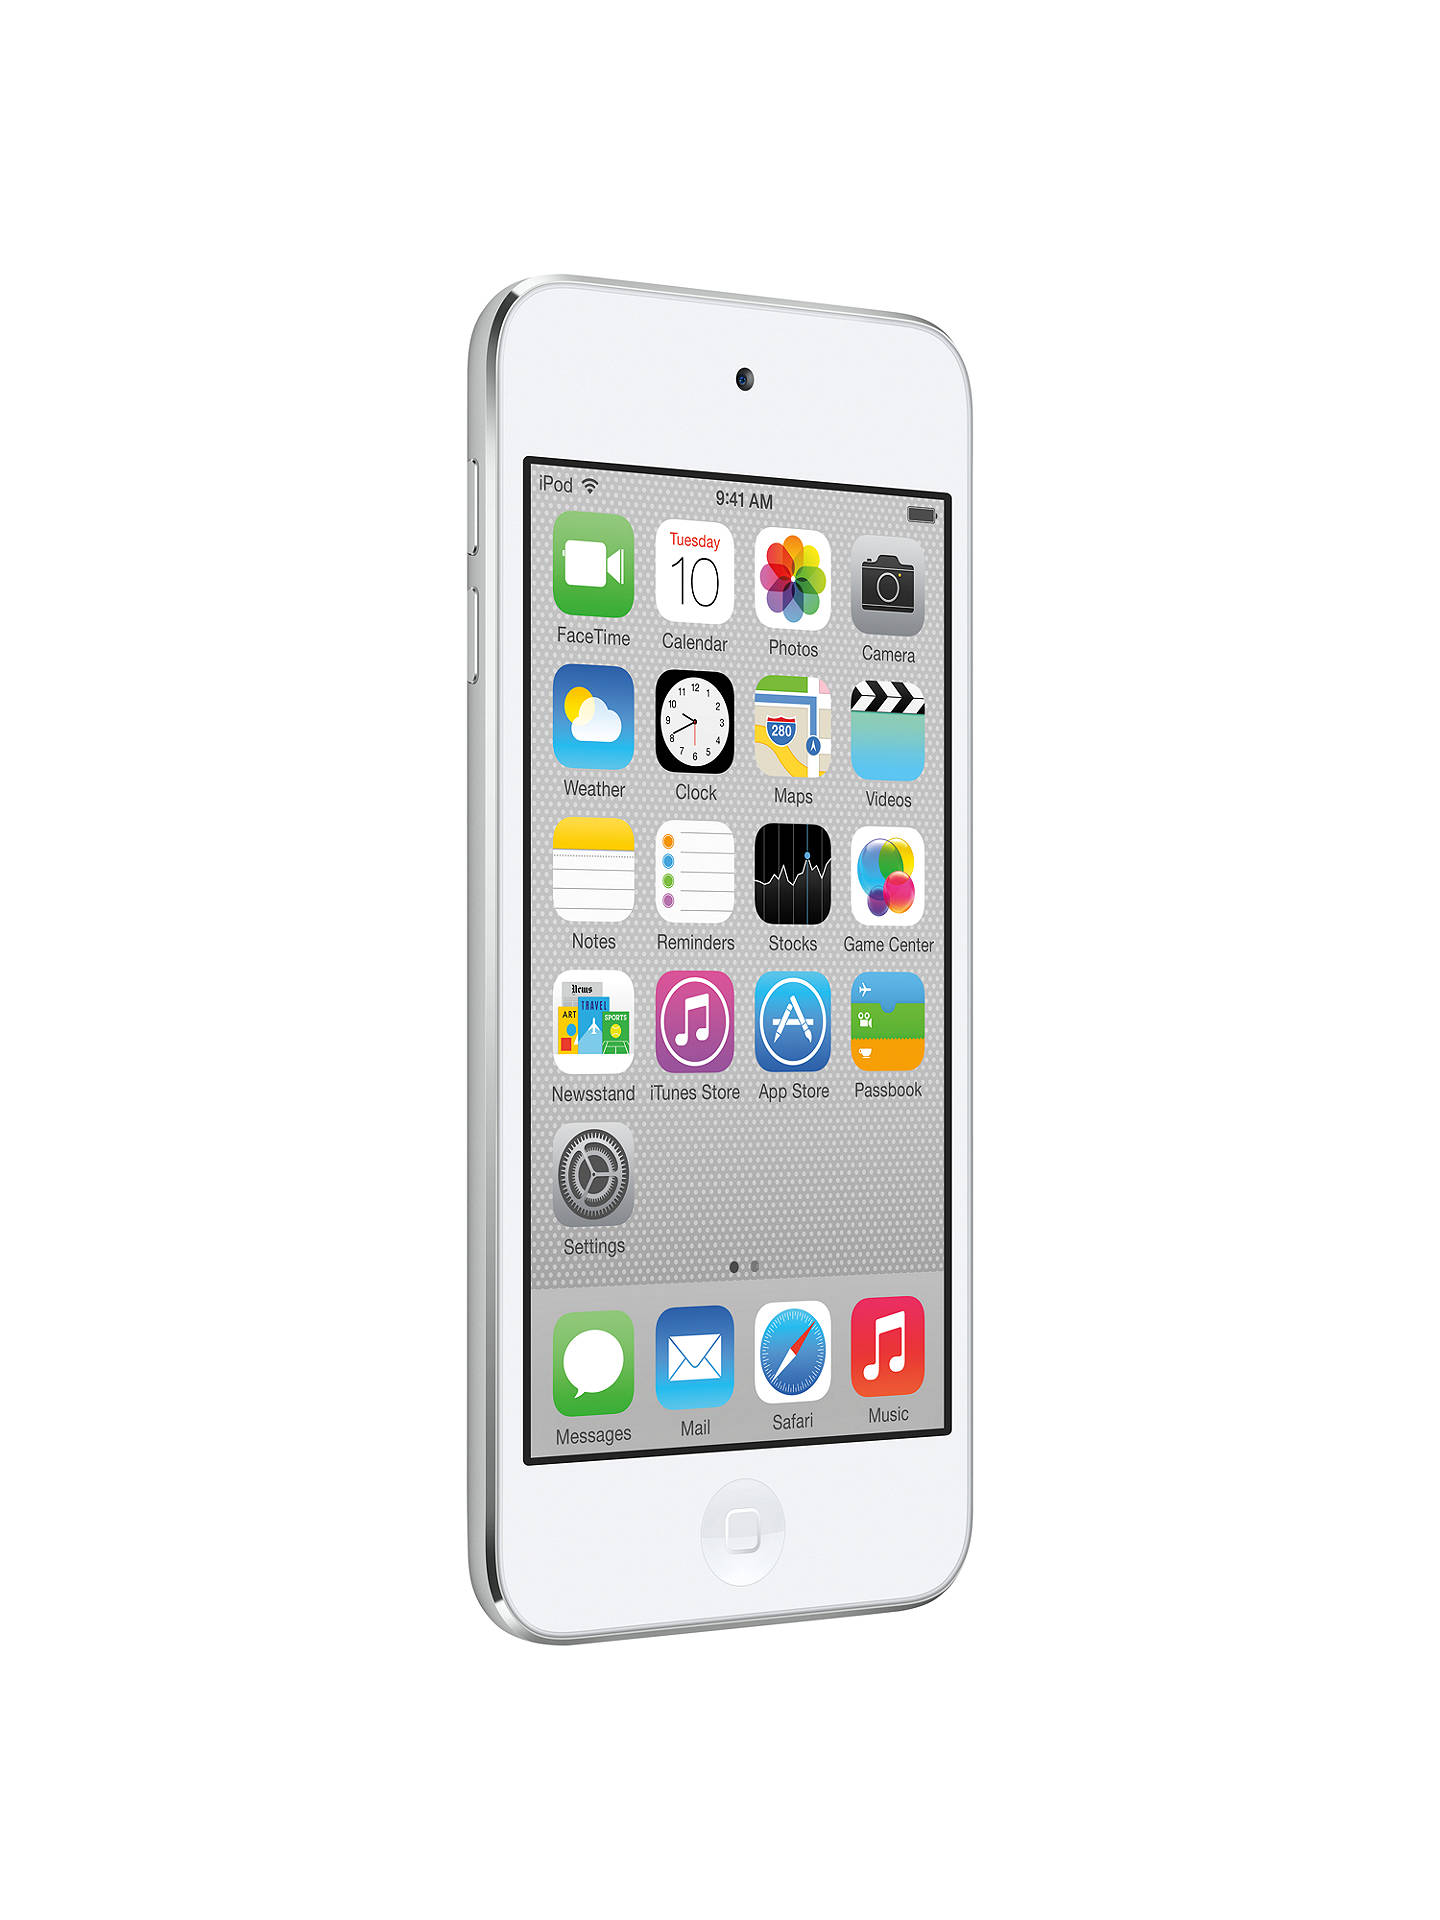 Apple Ipod Touch 5th Generation At John Lewis Partners 6 16gb Gold Buyapple White Silver Online Johnlewis